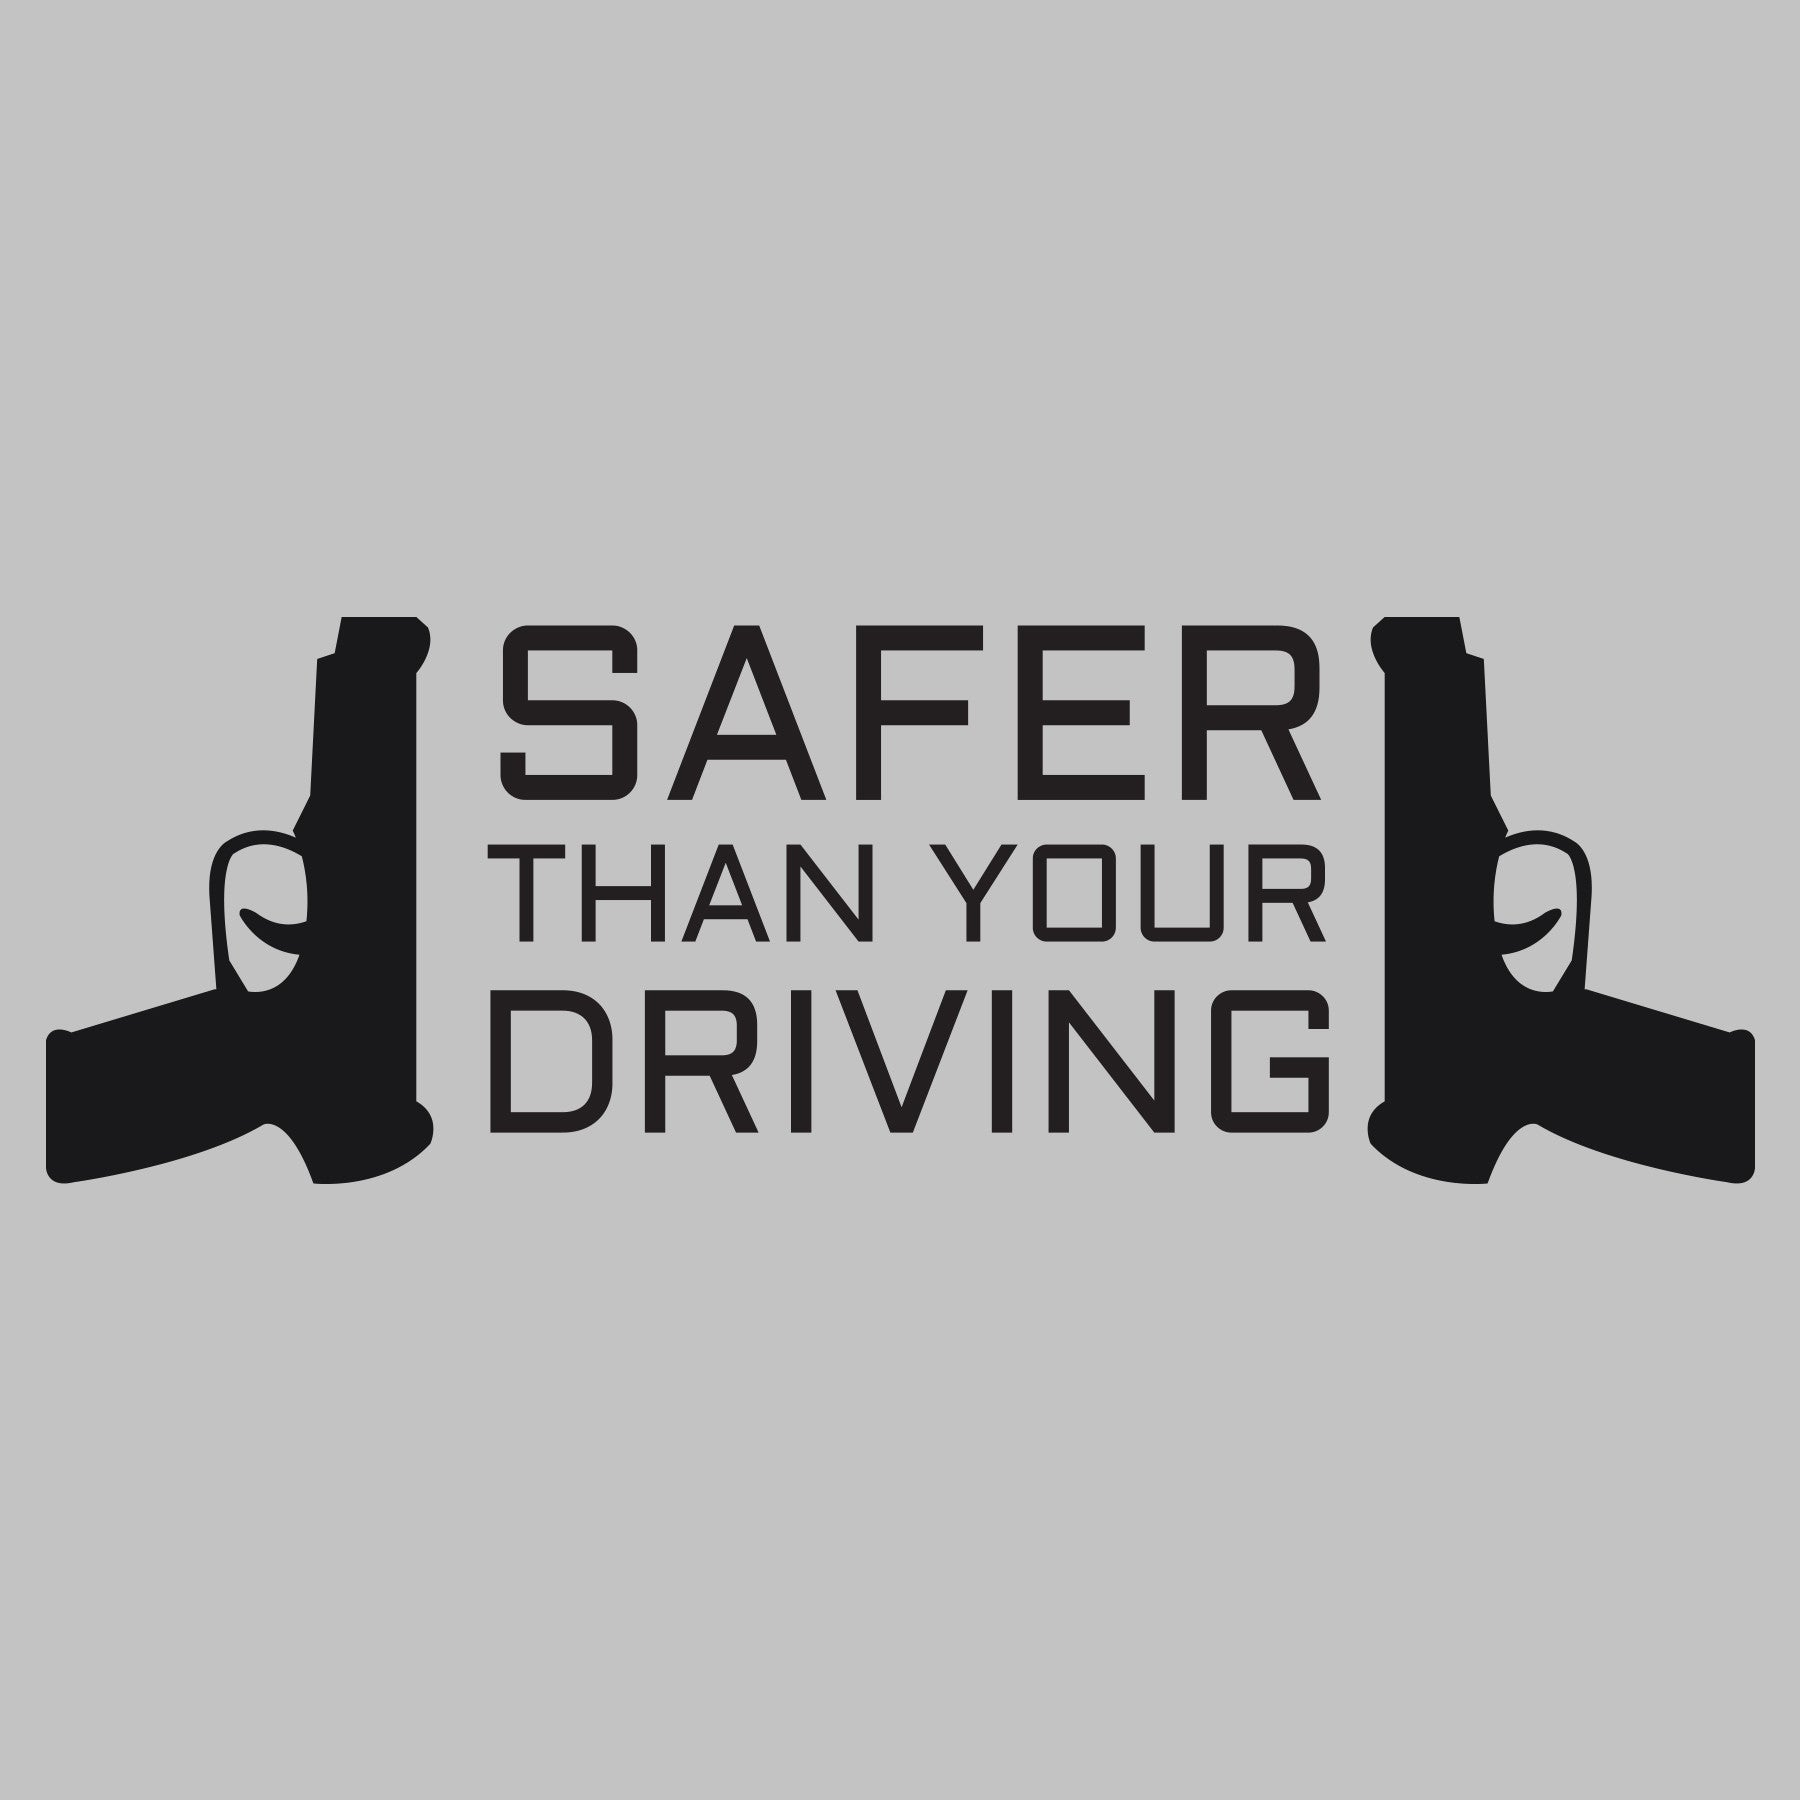 Safer than your driving